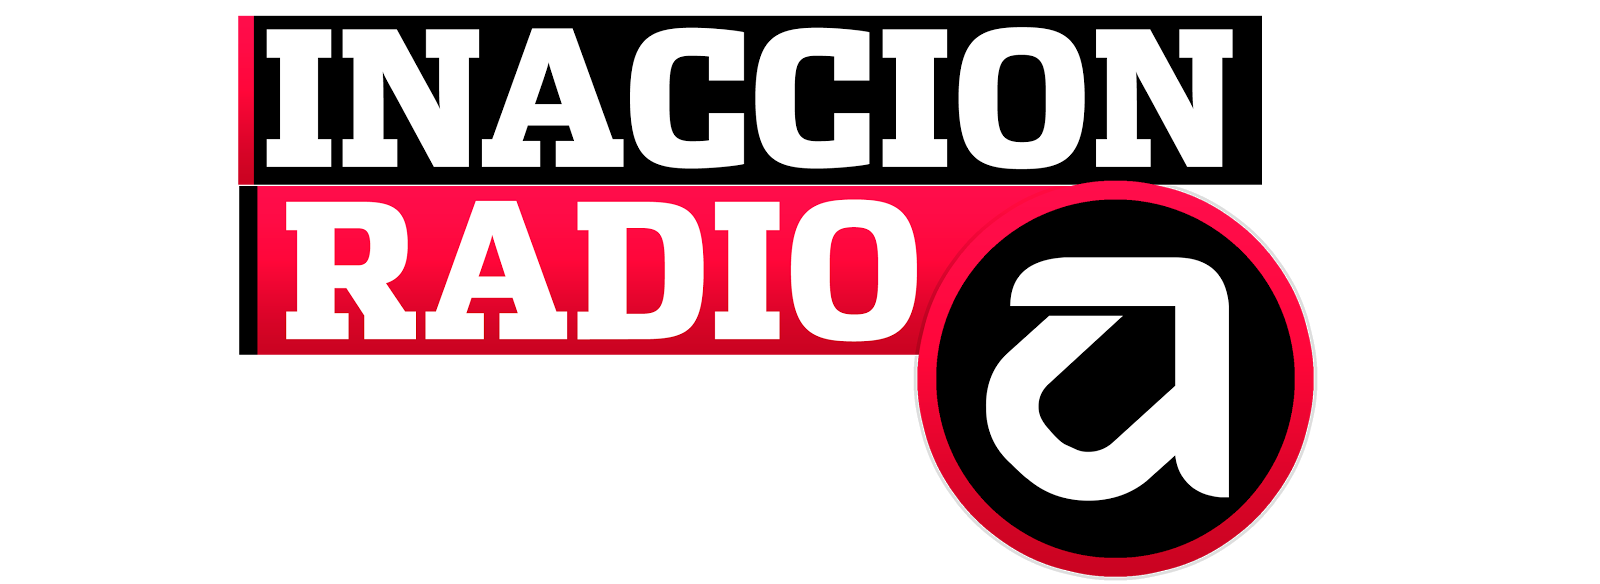 Inaccion Radio 2015